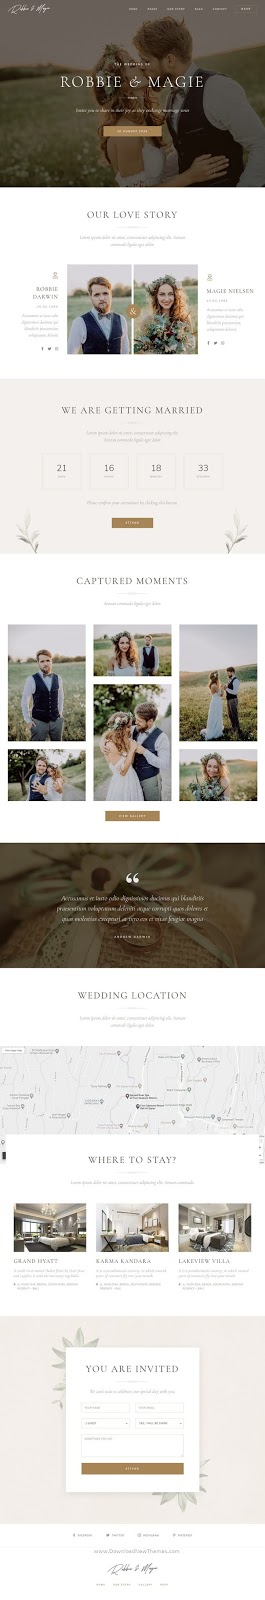 Wedding Event Invitation Elementor Template